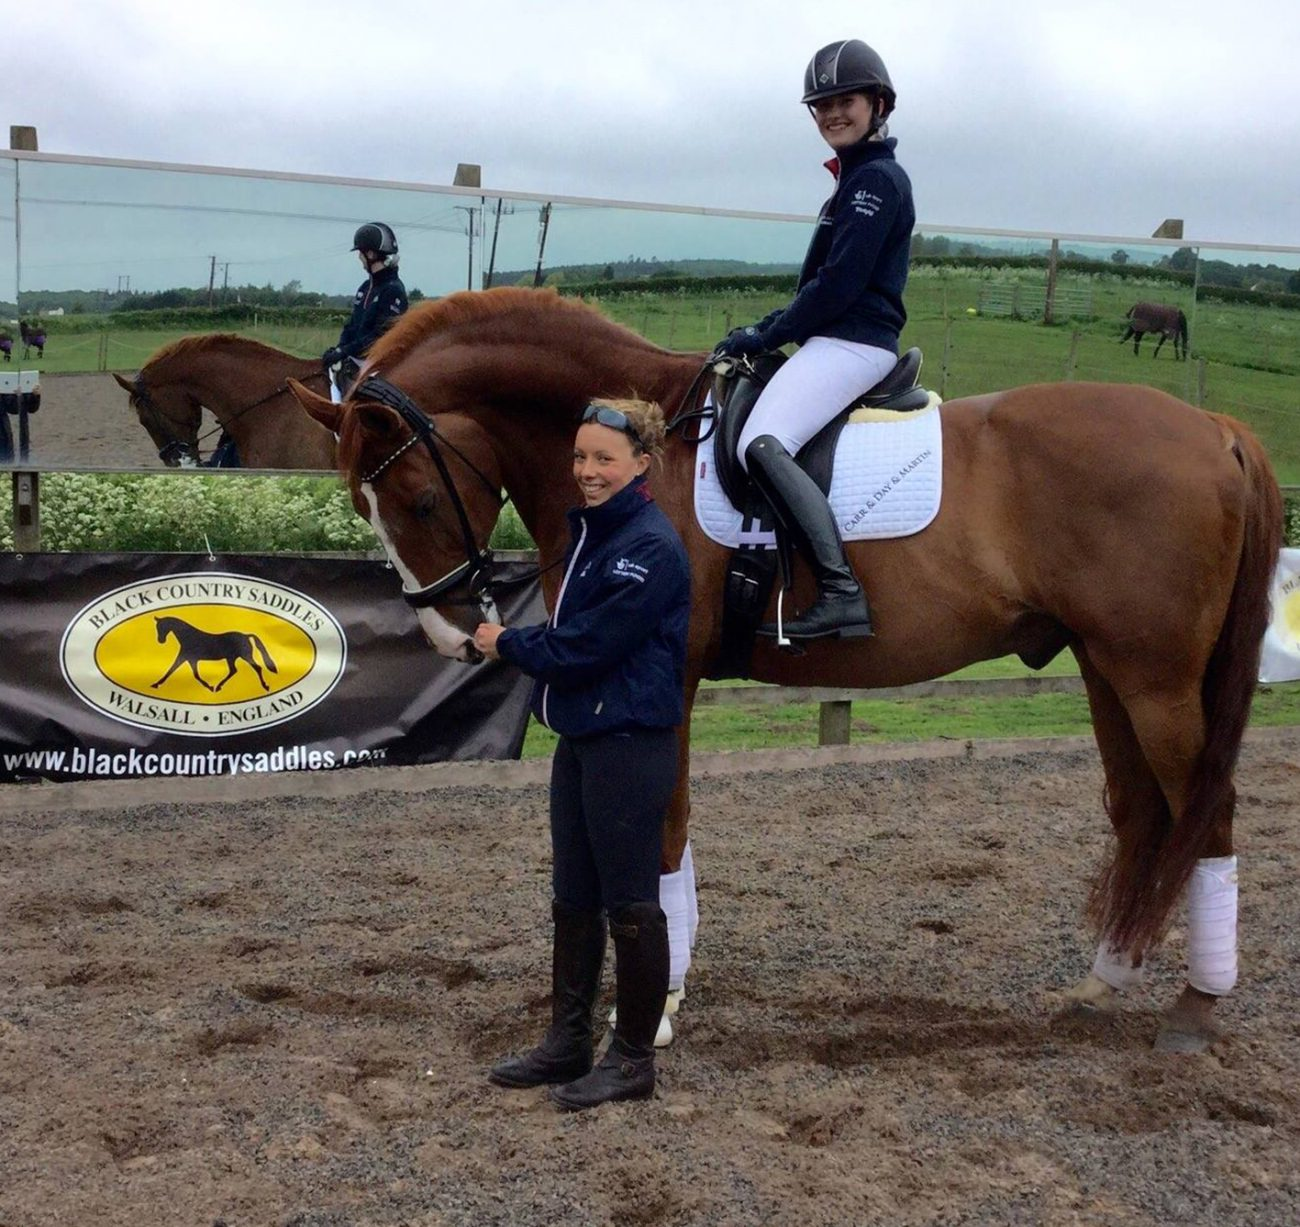 Sophie and Izzy e1465563835187 - TV Debut for Young Dressage Rider